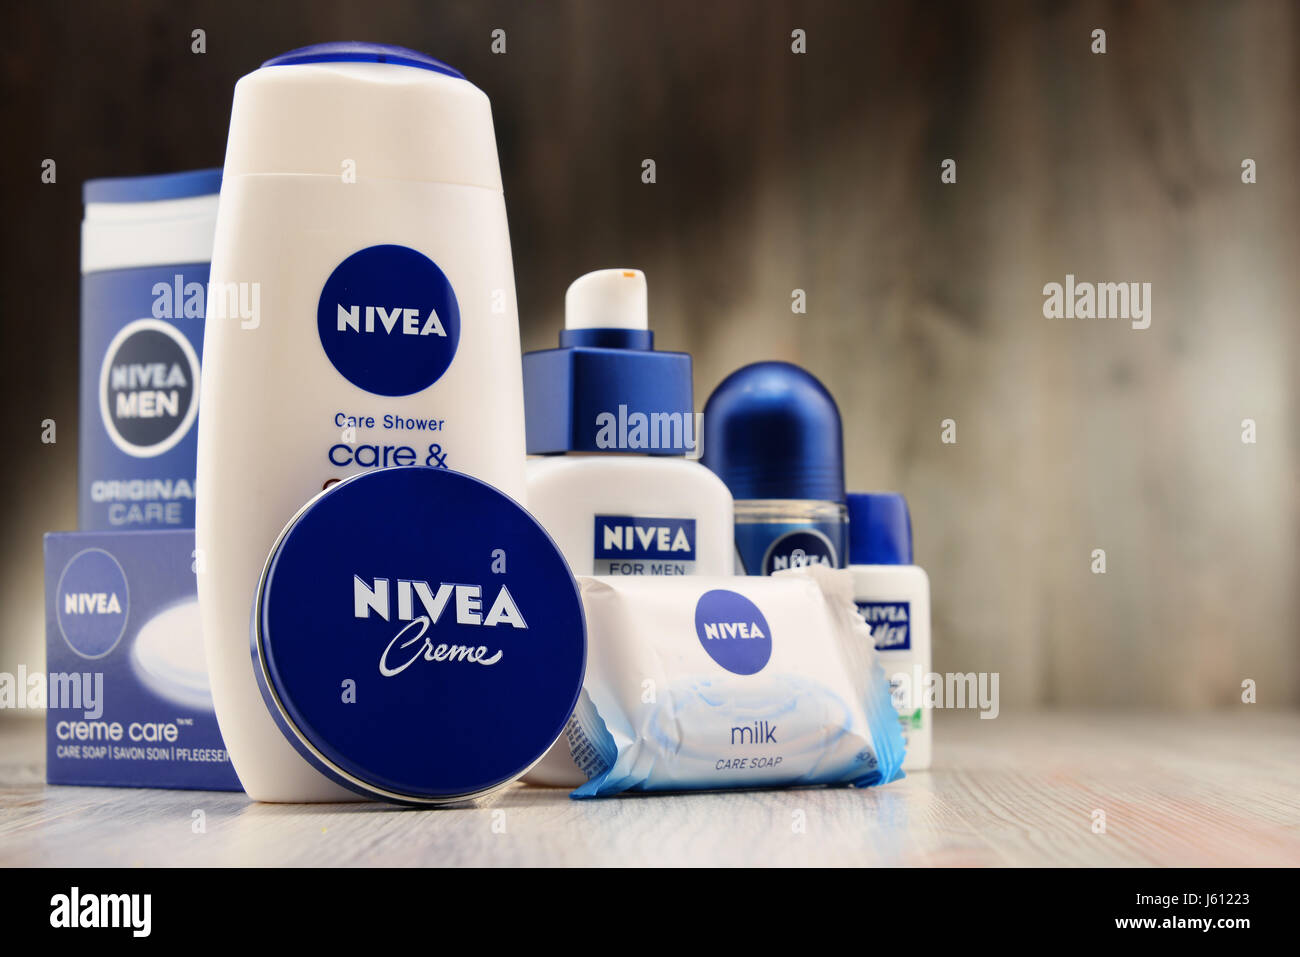 POZNAN, POLAND - DEC 2, 2016: Nivea is a German personal care brand that specializes in skin- and body-care products. - Stock Image